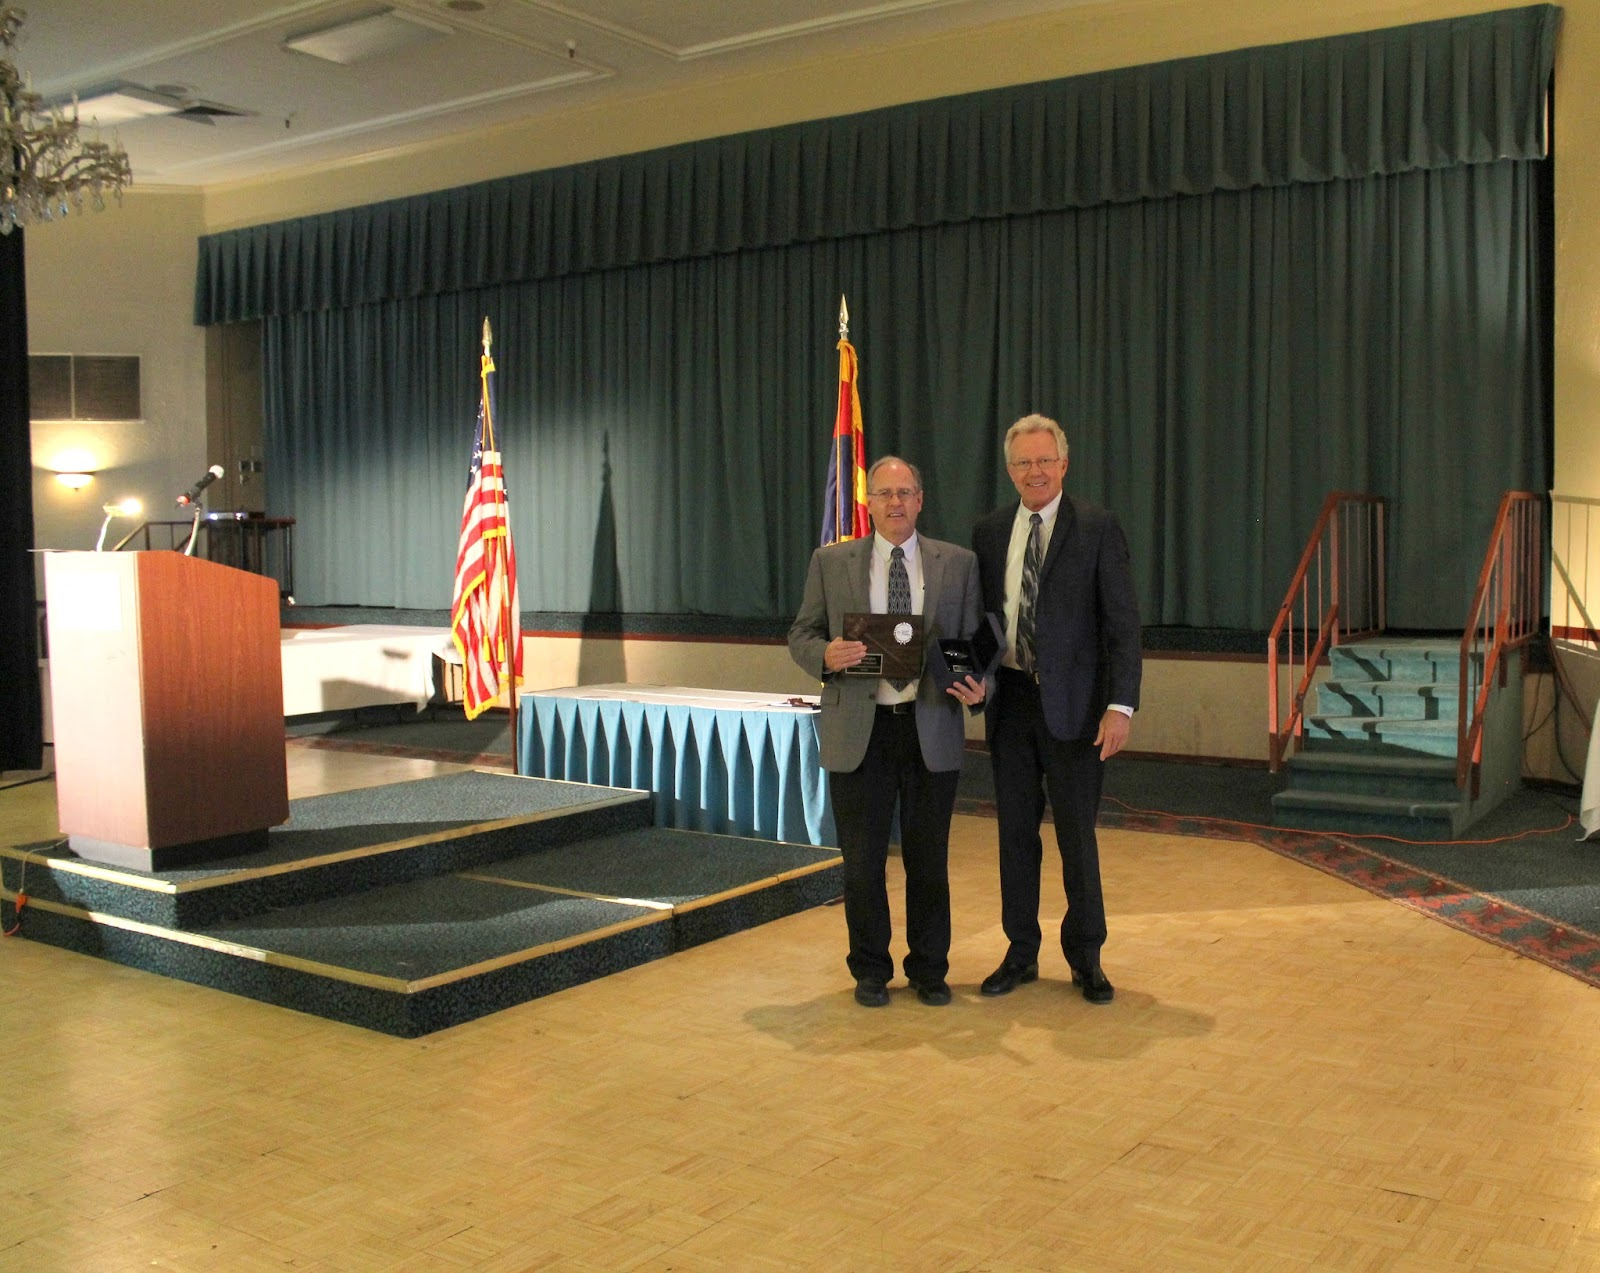 Kurt Wadlington, Sundt accepting award for his service on the Board of Directors. Kurt was also Chairman 2013/14.